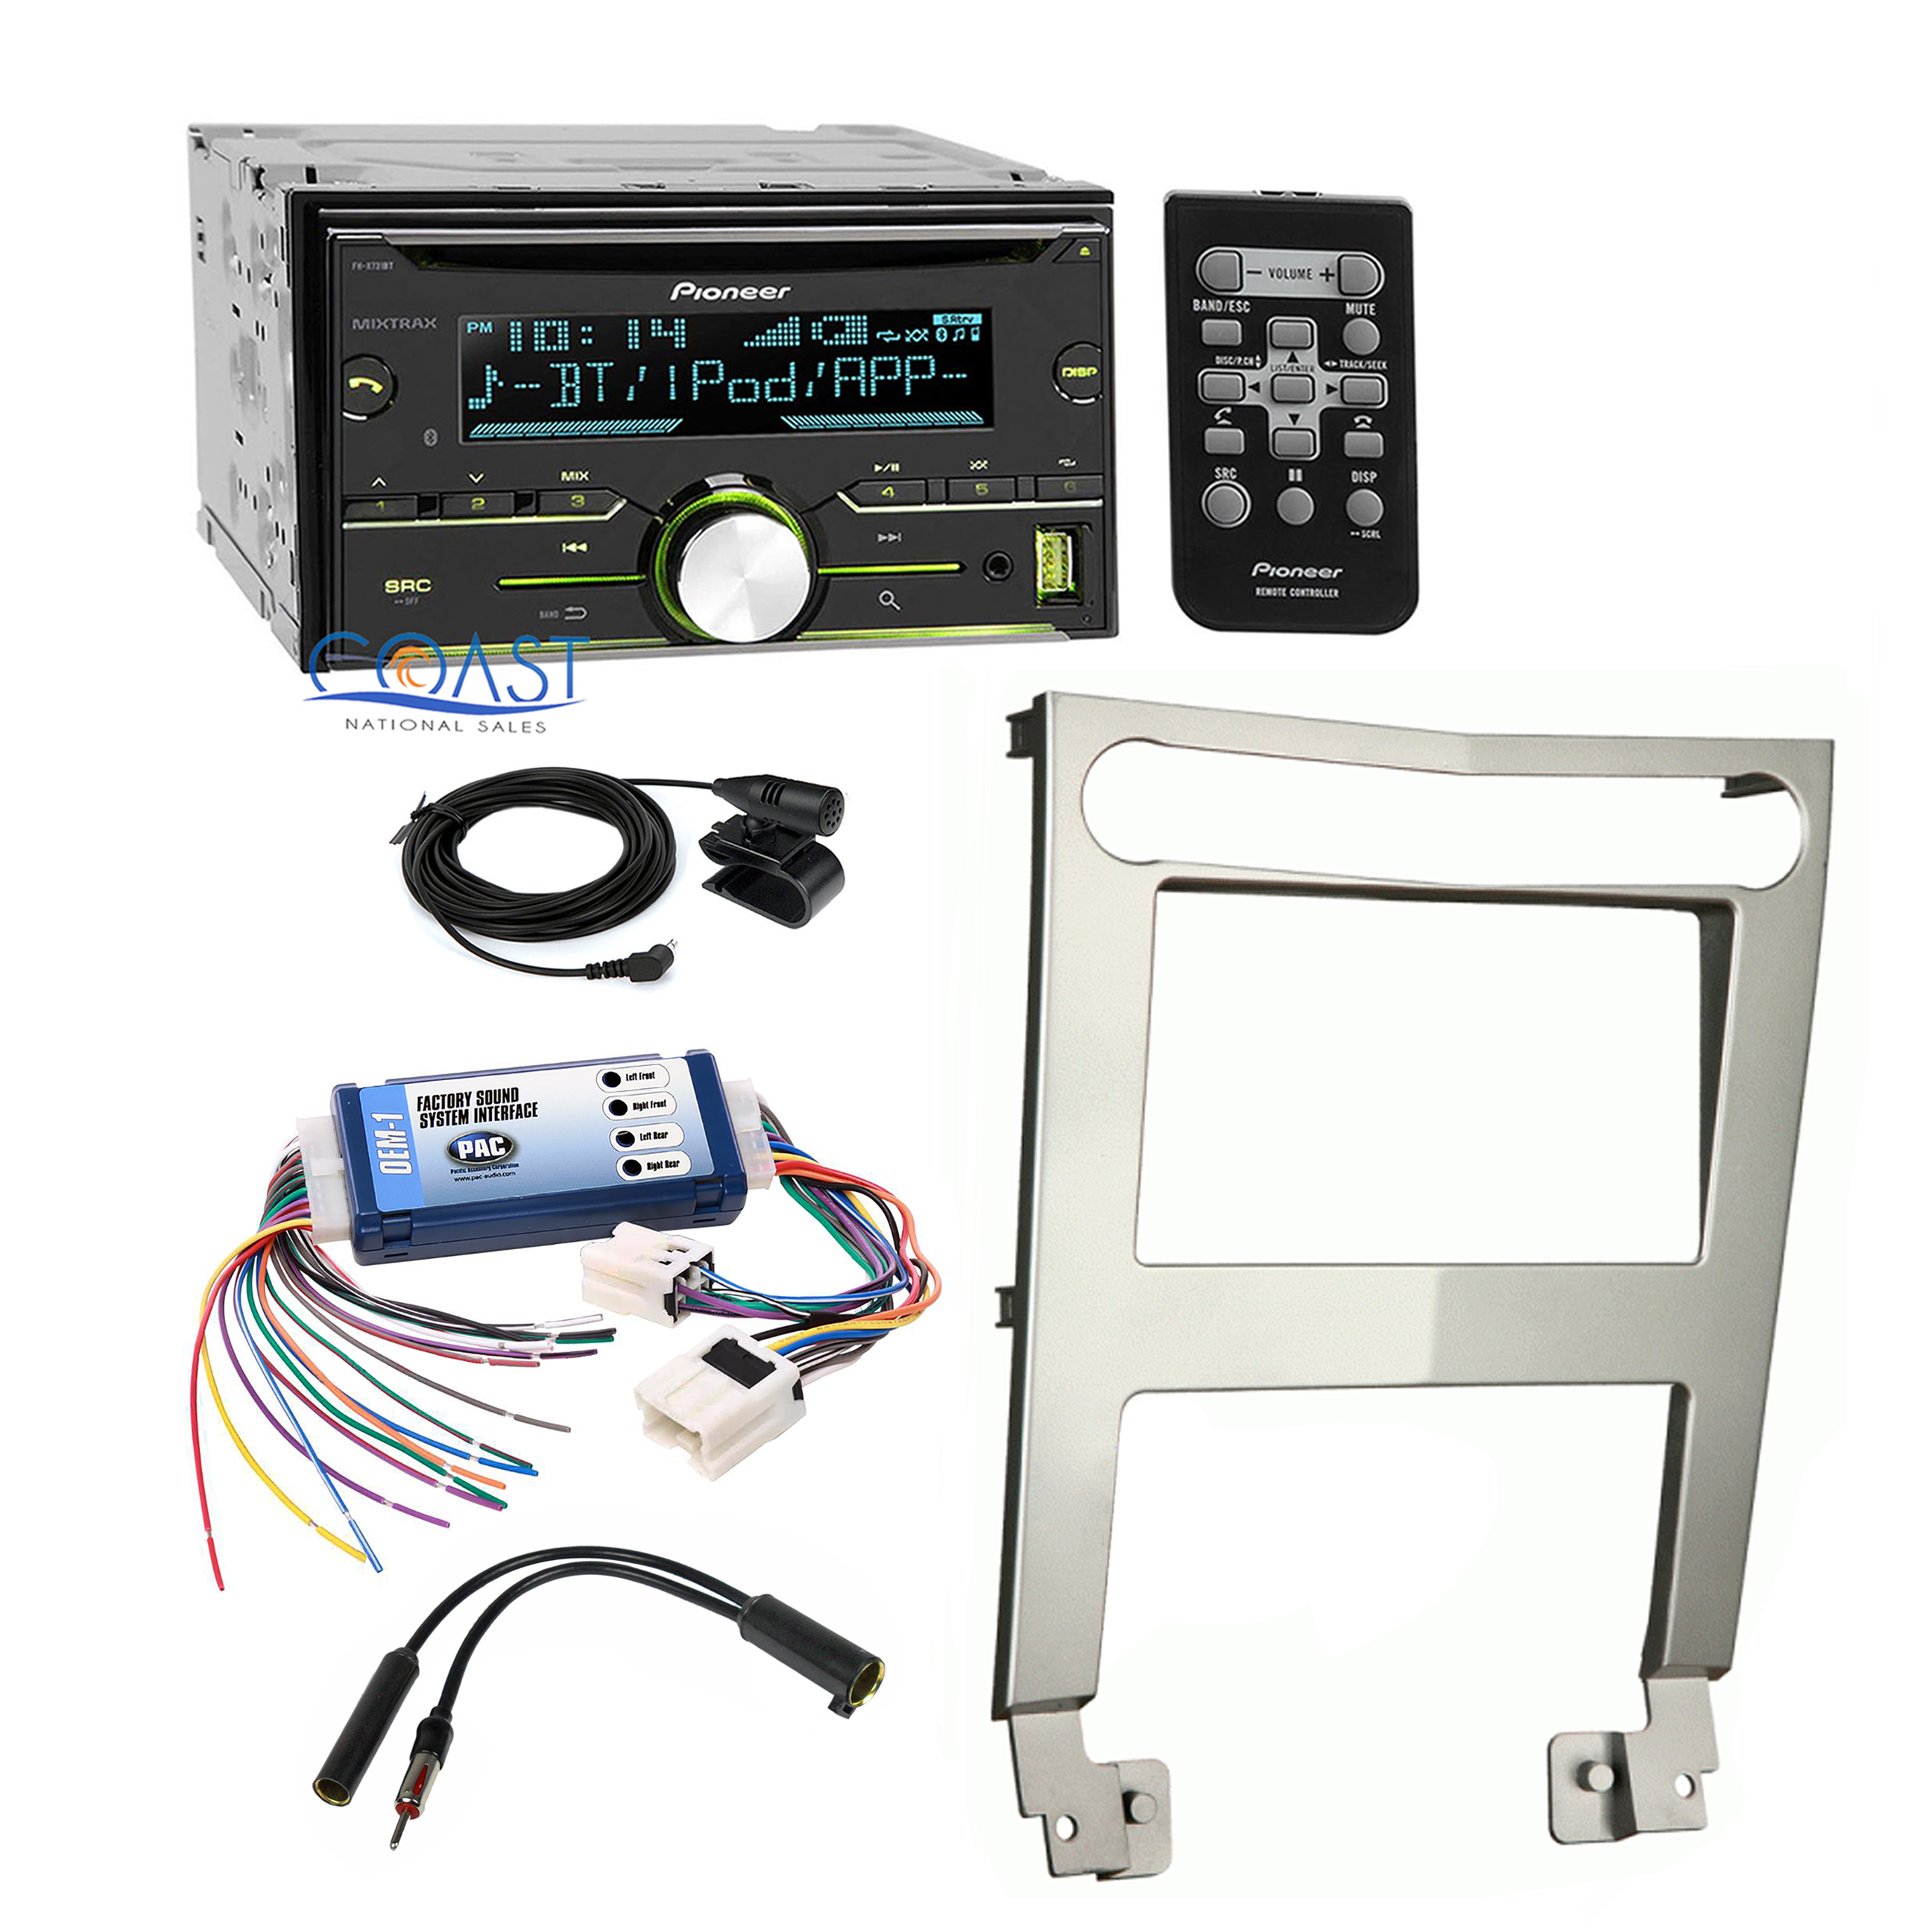 details about pioneer car stereo dash kit bose wire harness interface for 04 06 nissan maxima Ford Radio Wiring Harness